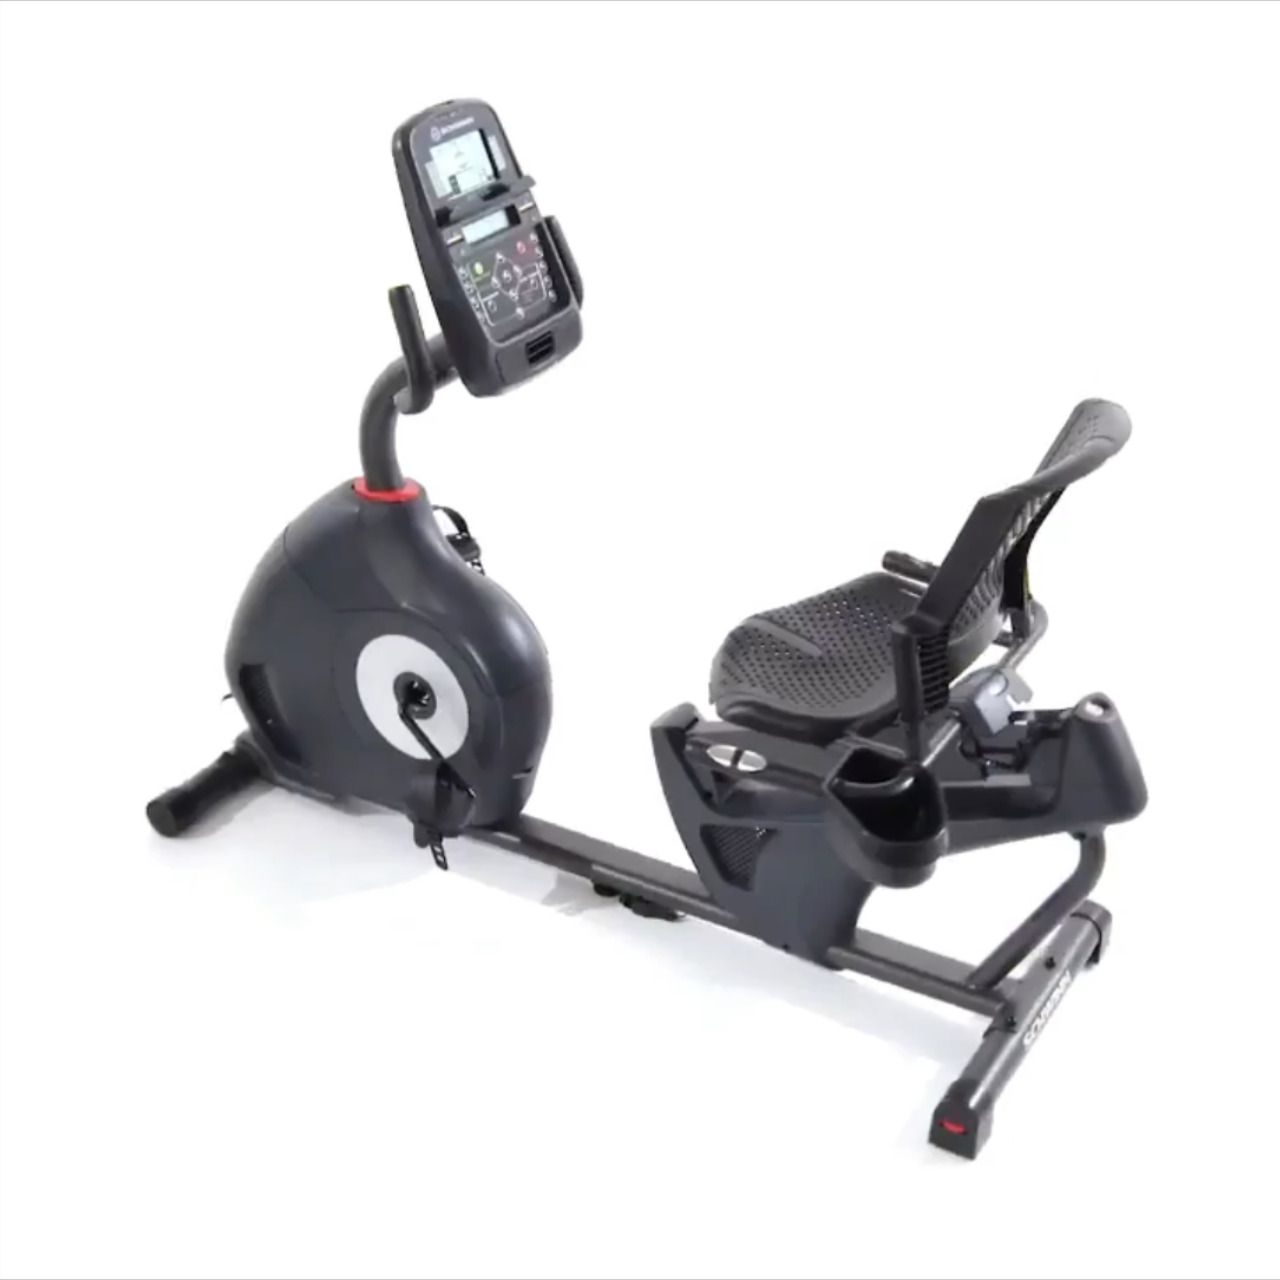 Treadmill Vs Elliptical Reddit Sit And Cycle Com Folding